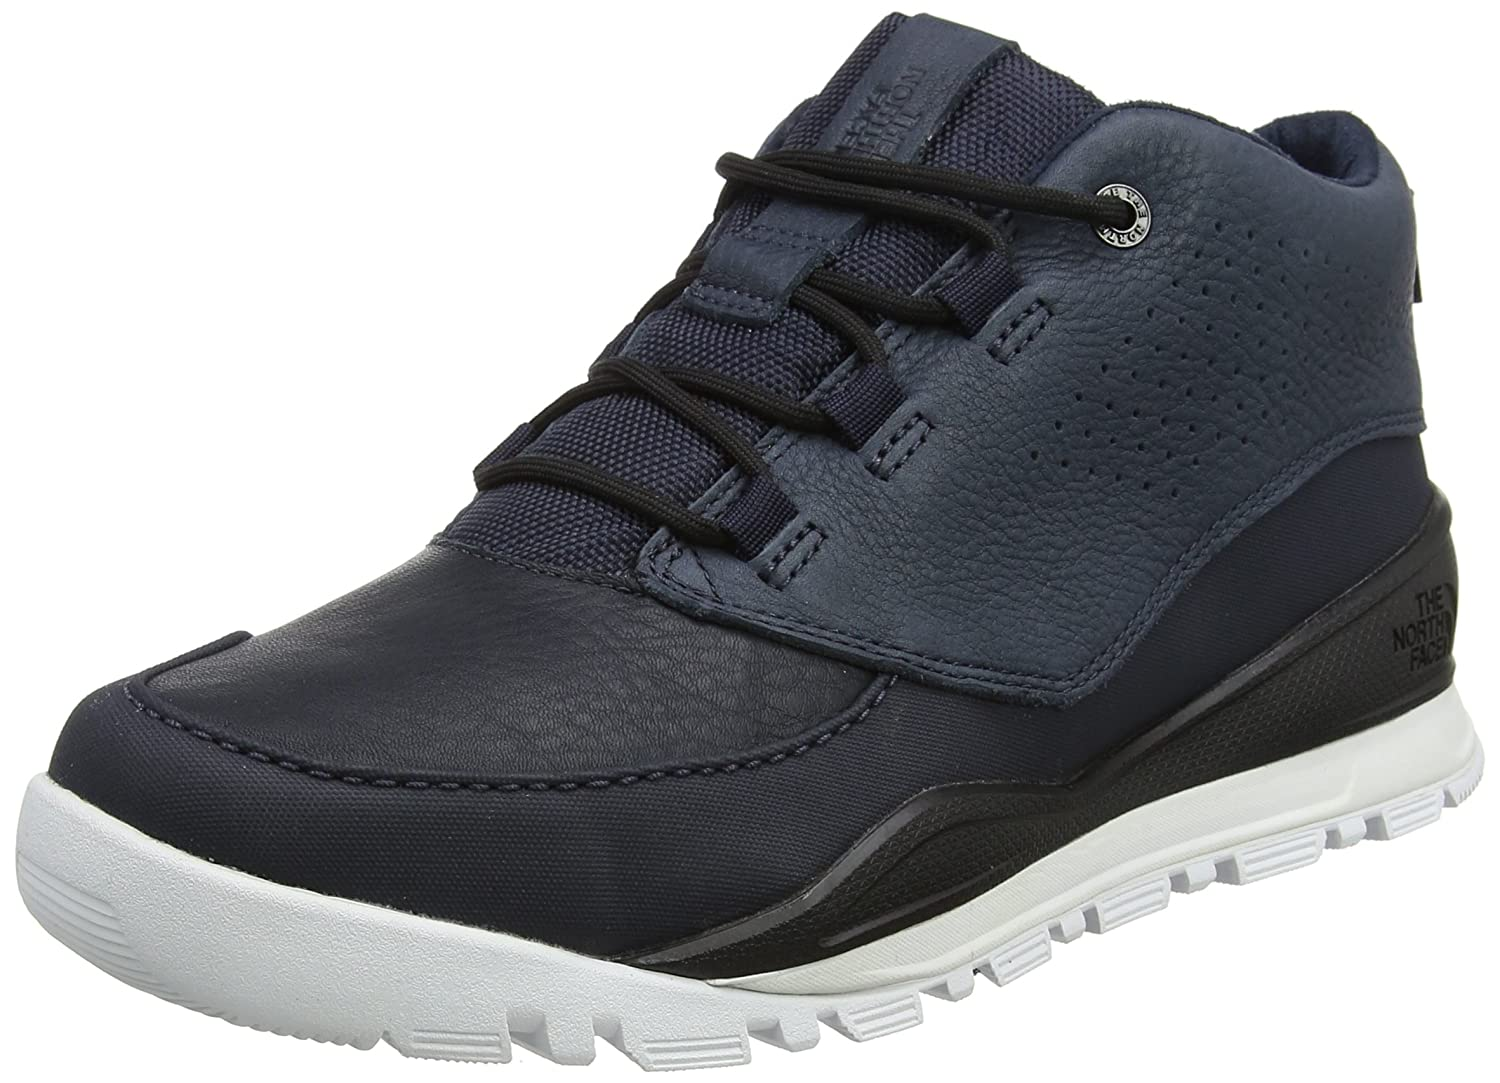 TALLA 40.5 EU. The North Face M Edgewood Chukka, Botas Hombre